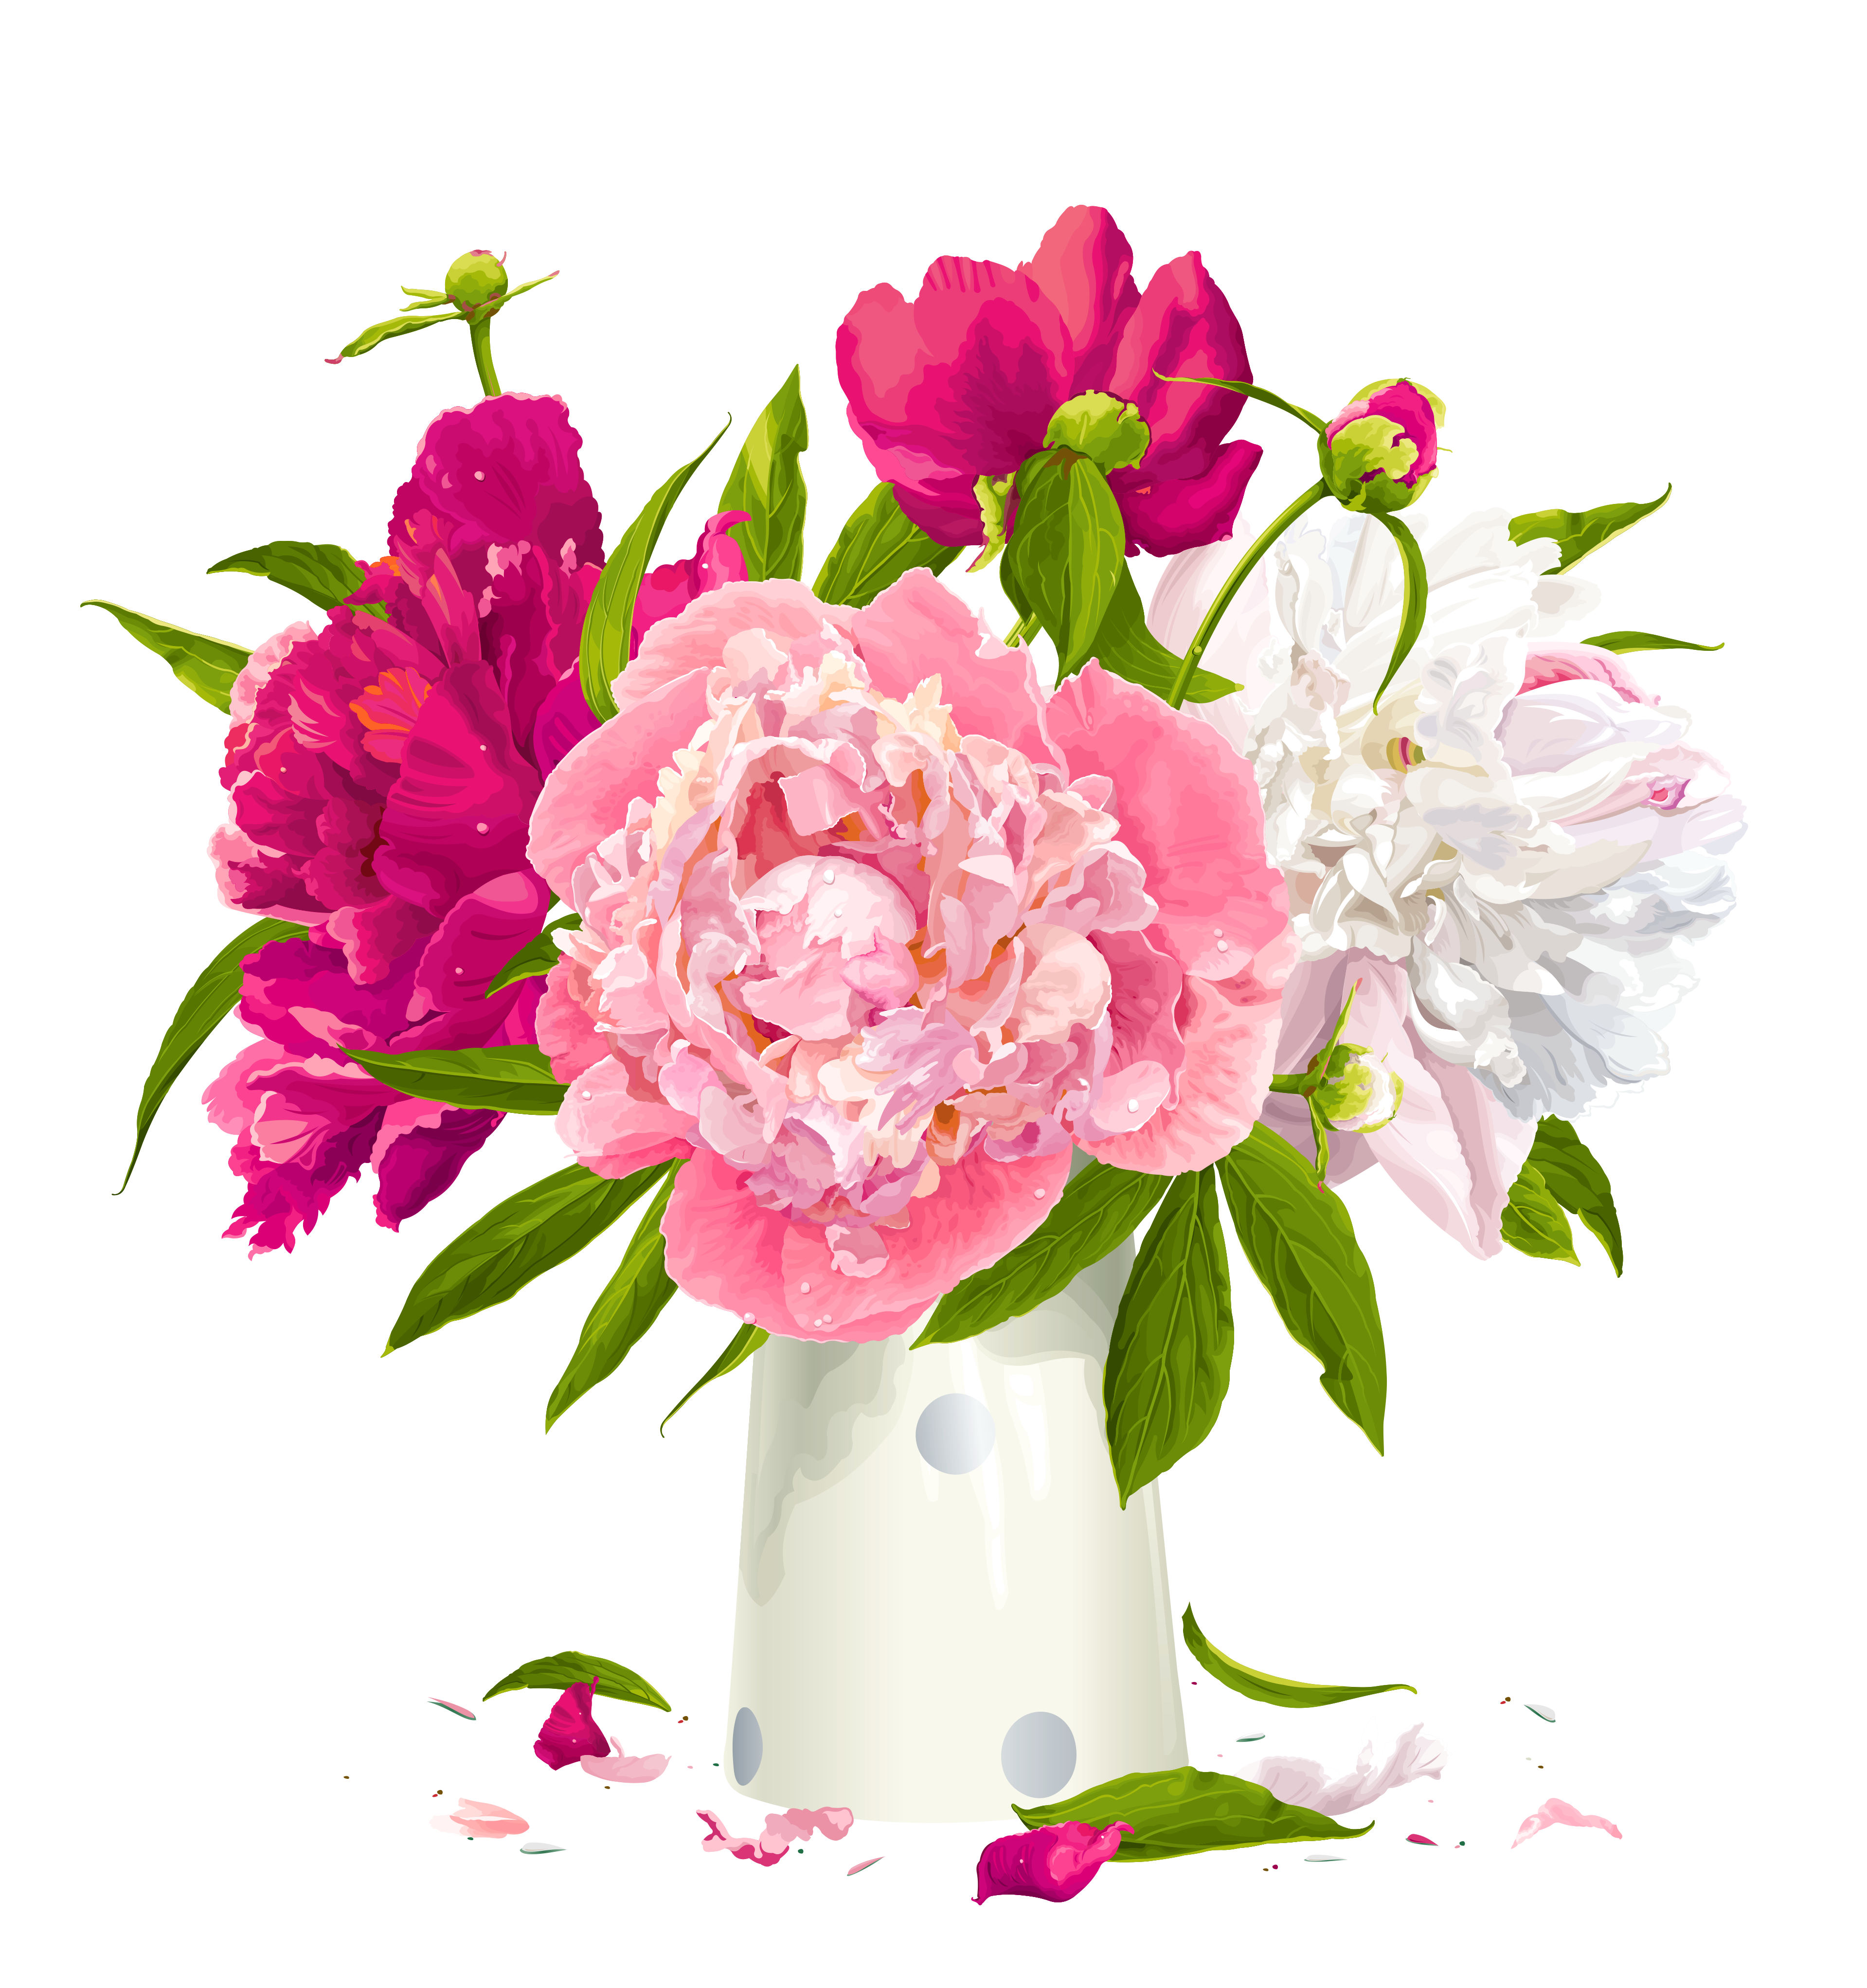 vase clipart flower bouqet